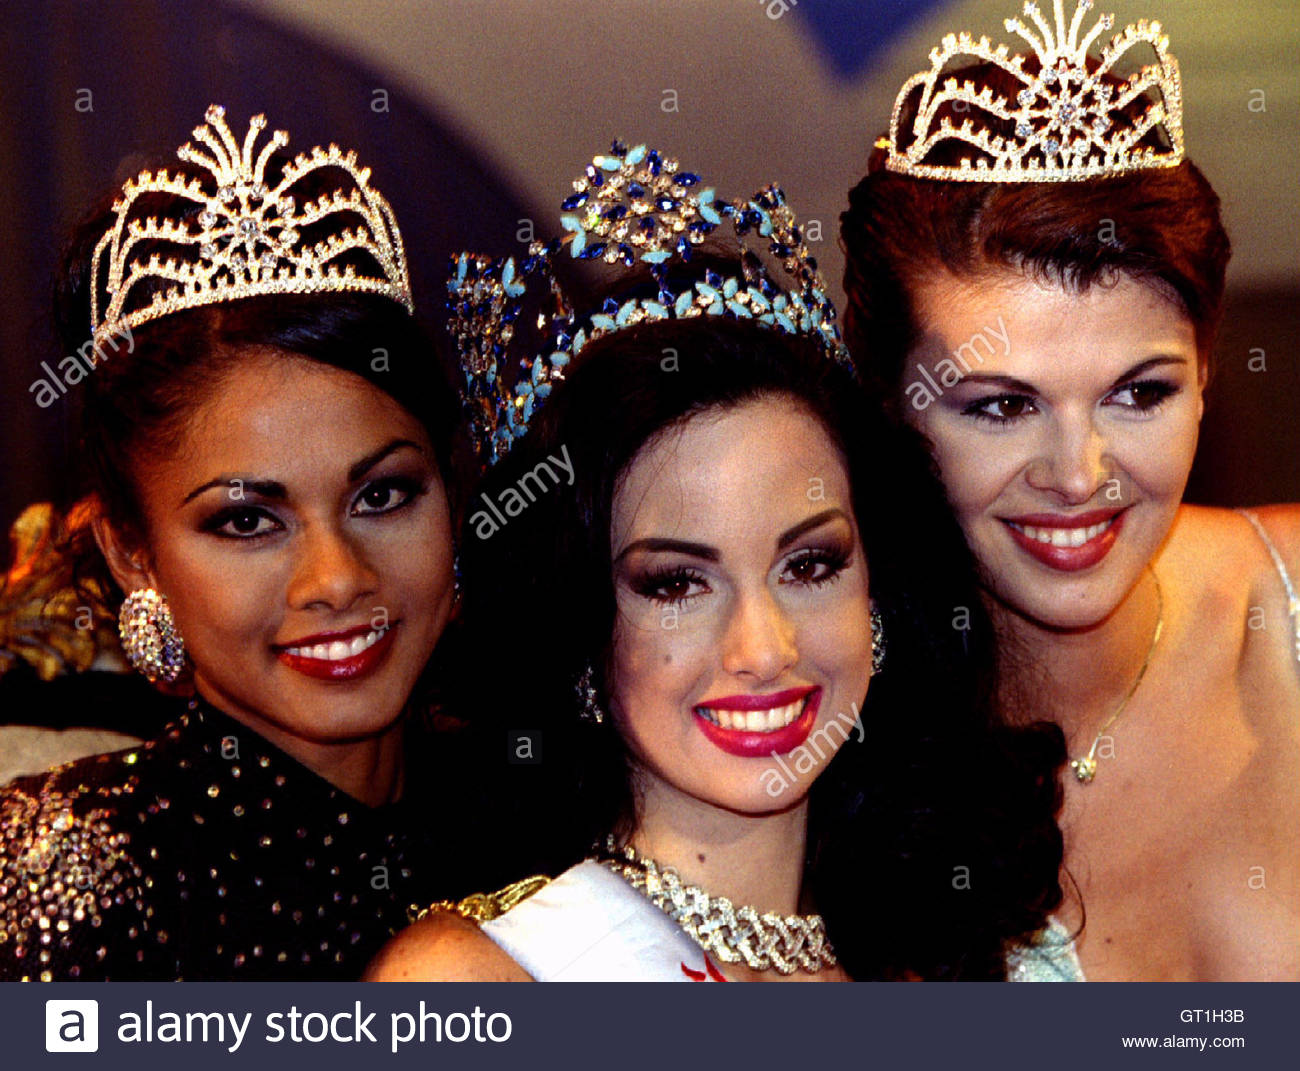 jacqueline aguilera, miss world 1995. The-ne10